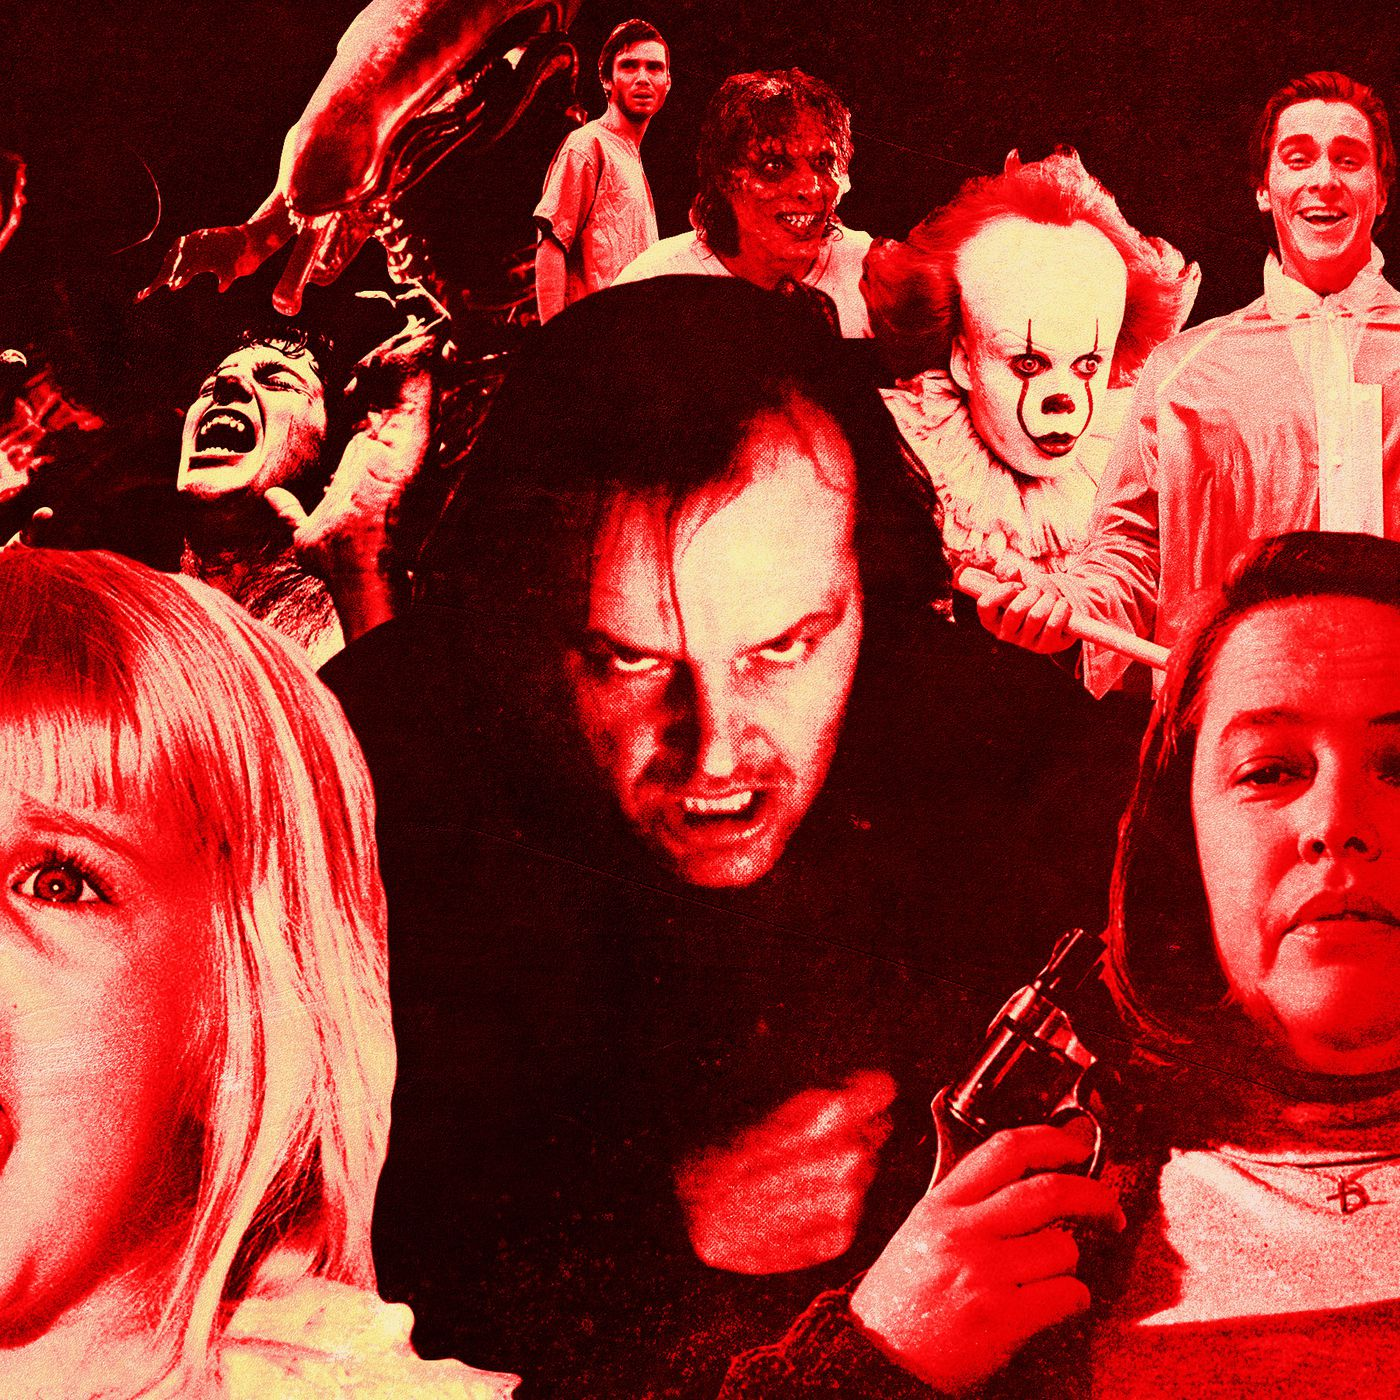 Introducing The Horror Oscars The 40 Best Scary Movies Since Halloween The Ringer